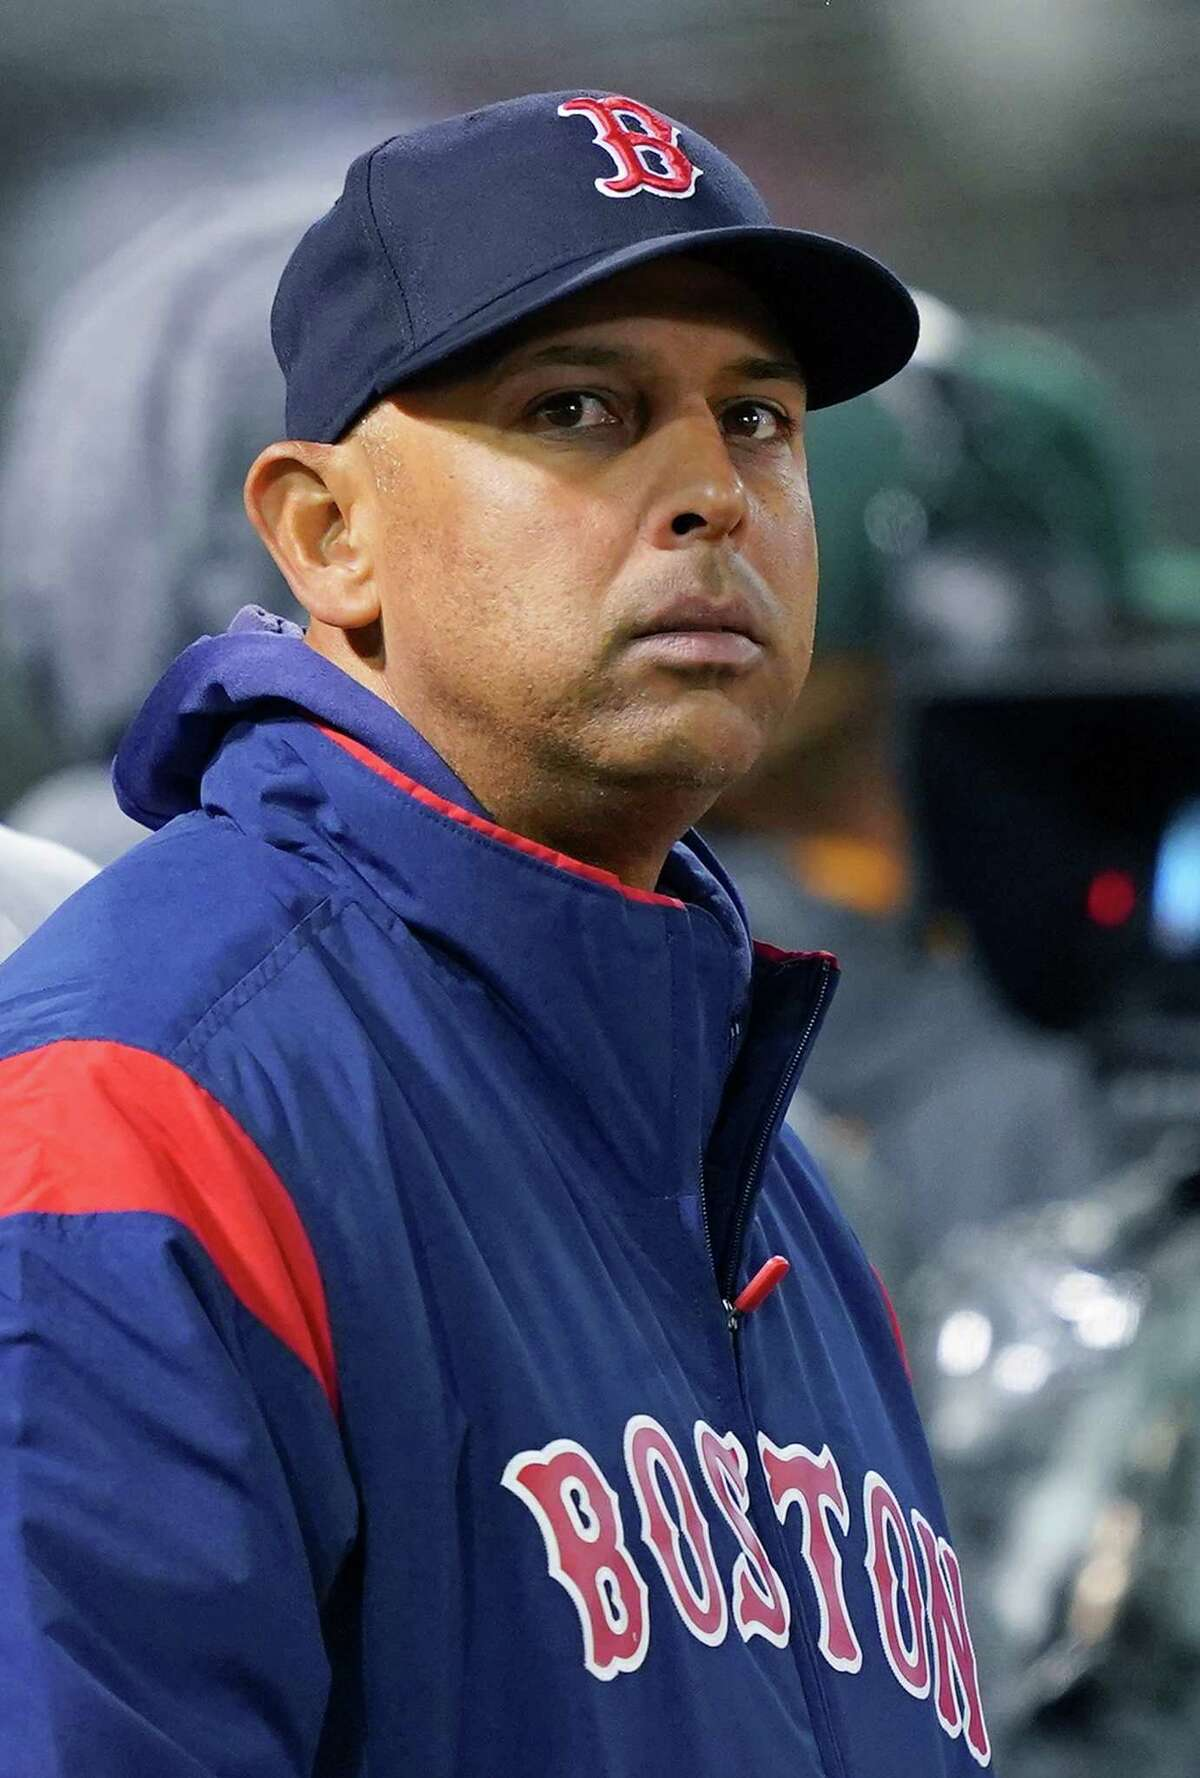 OAKLAND, CA - APRIL 01: Manager Alex Cora #20 of the Boston Red Sox looks on from the end of the dugout against the Oakland Athletics in the top of the fifth inning at Oakland-Alameda County Coliseum on April 1, 2019 in Oakland, California. (Photo by Thearon W. Henderson/Getty Images)